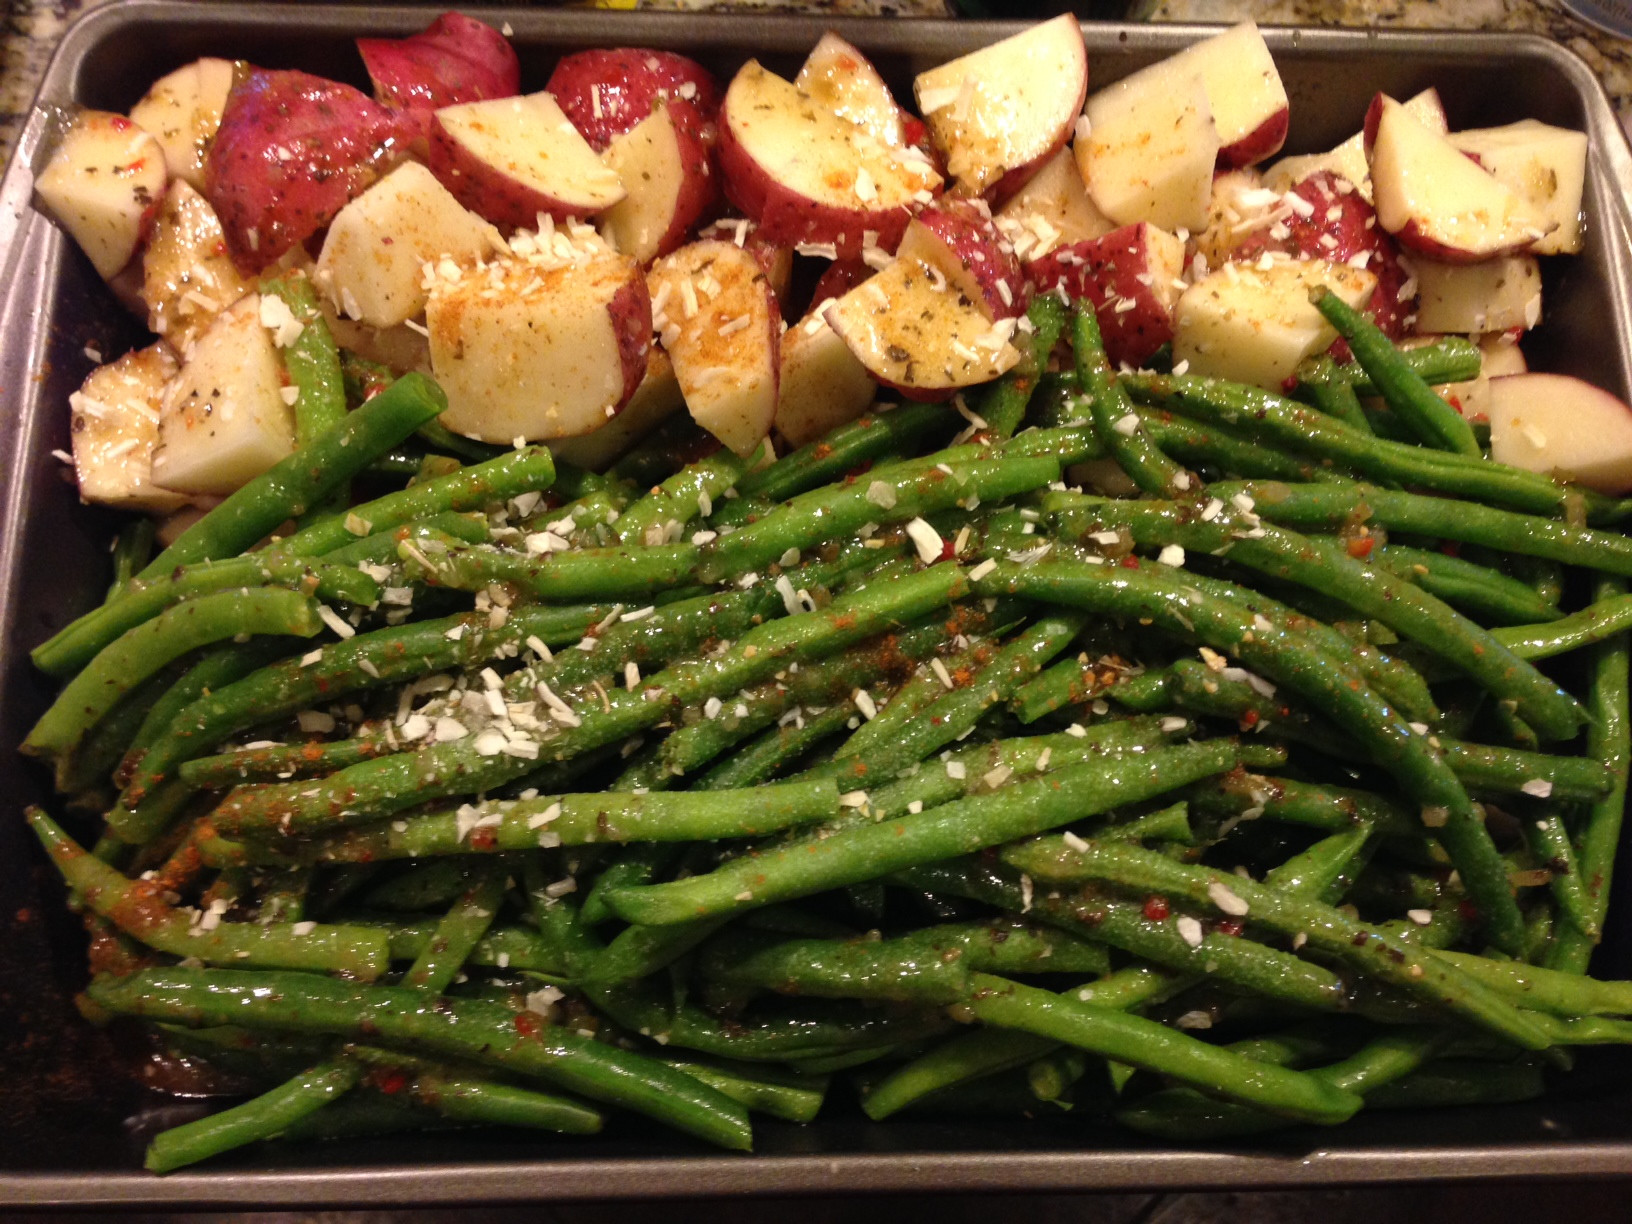 Beans Greens Potatoes  Day 5 8 AdvoCare 24 Day Challenge Not So Gourmet